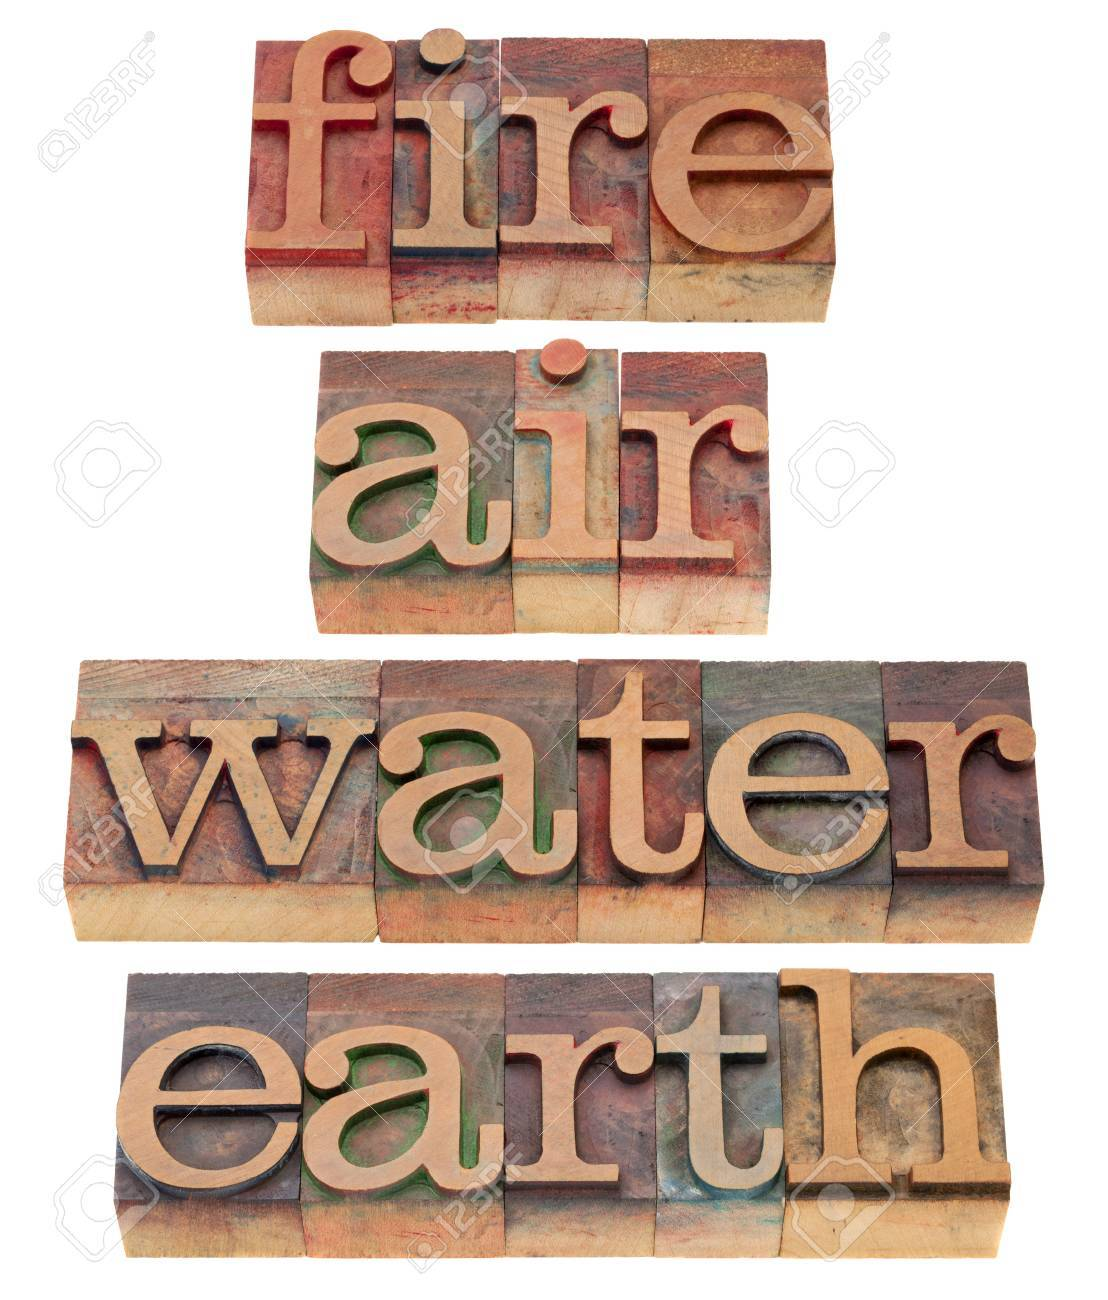 four classical elements of Greek philosophy - fire, air, water and earth - words in vintage wooden letterpress printing blocks, isolated on white Stock Photo - 8712701